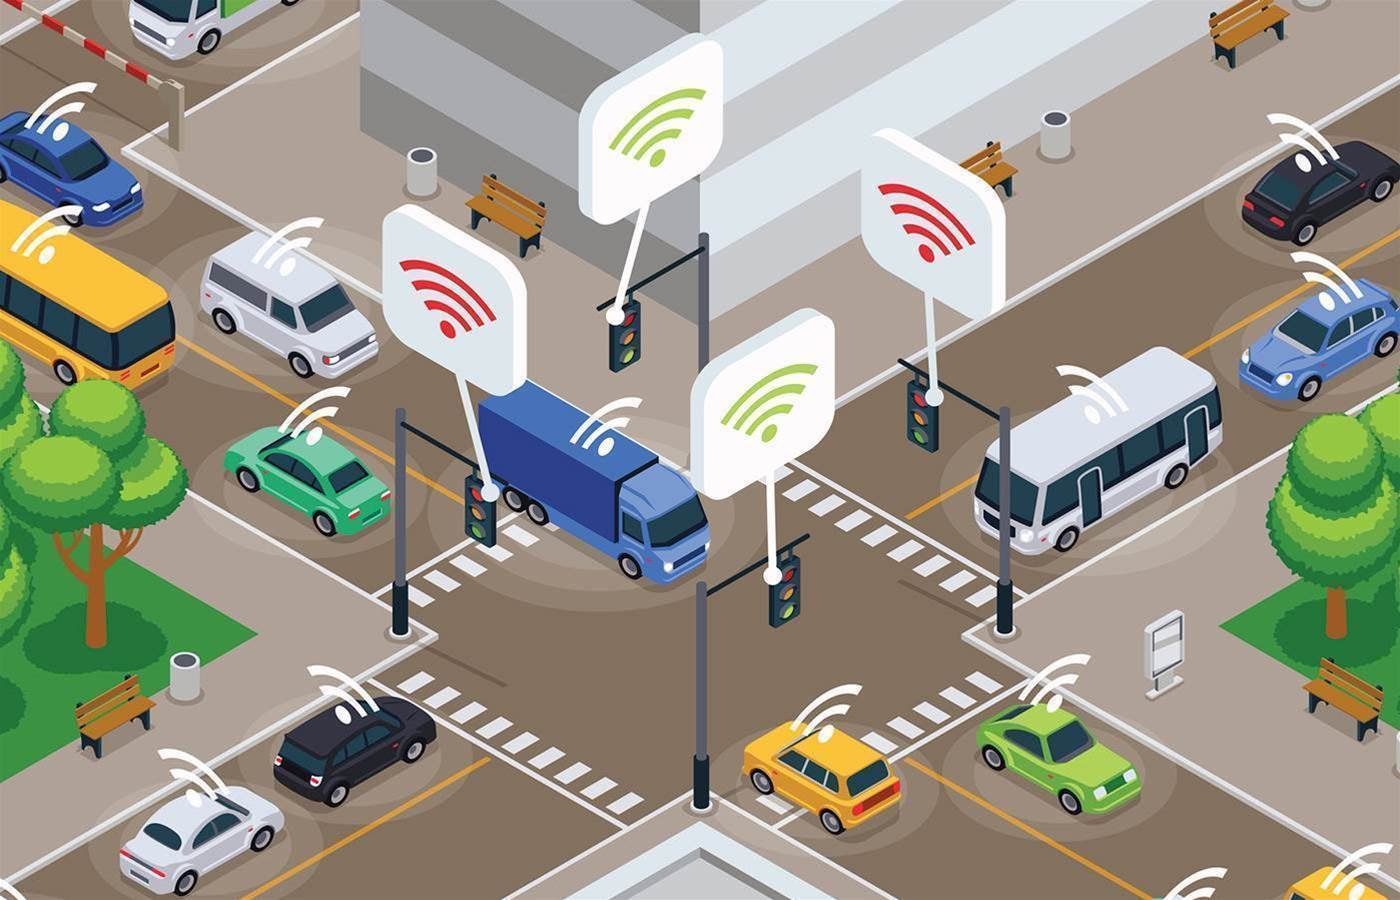 Cisco brings IoT to transport with $8b infrastructure firm